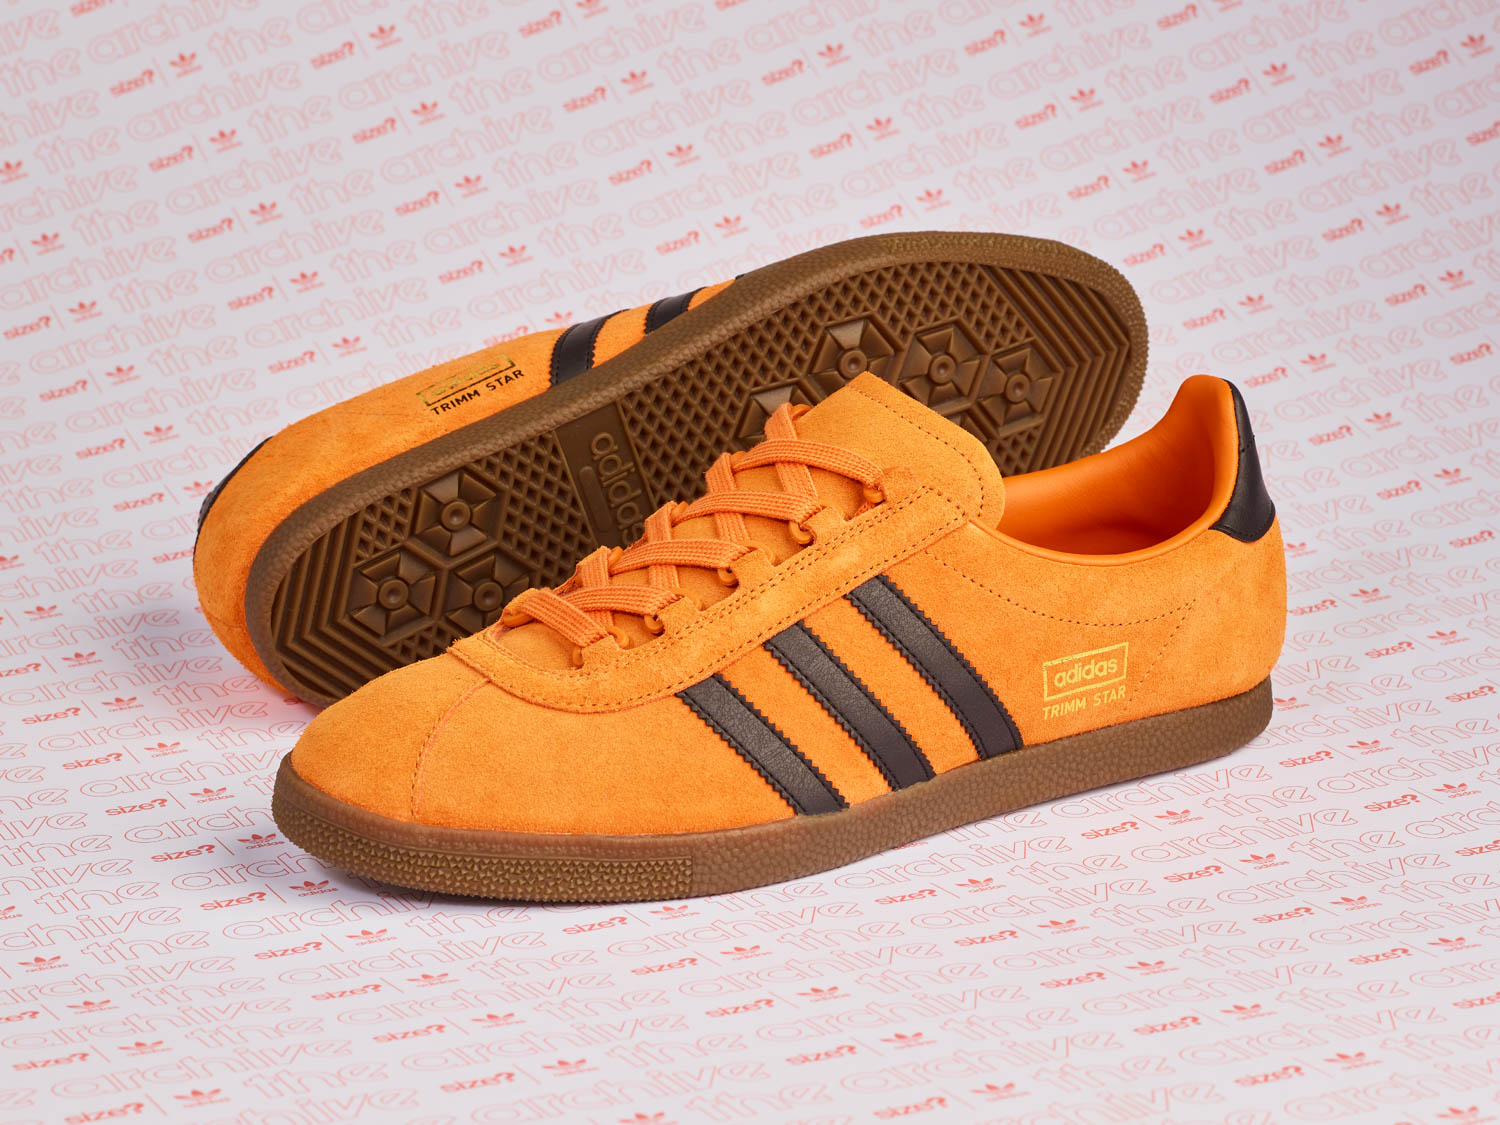 adidas Originals Archive Trimm Star 'Pumpkin' – size? Exclusive